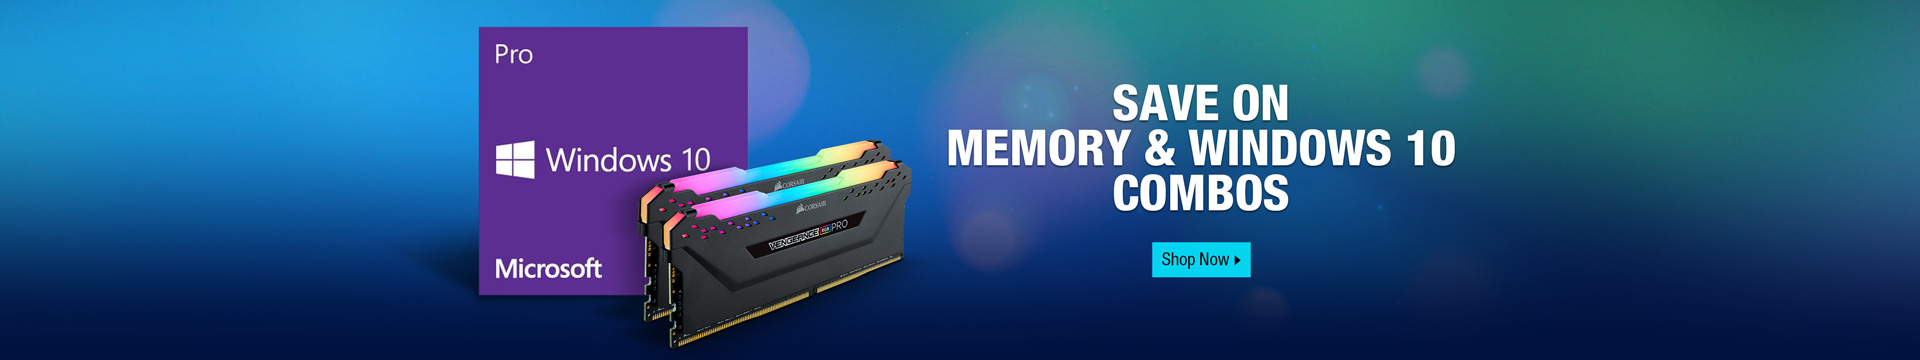 Save on memory & windows 10 combos